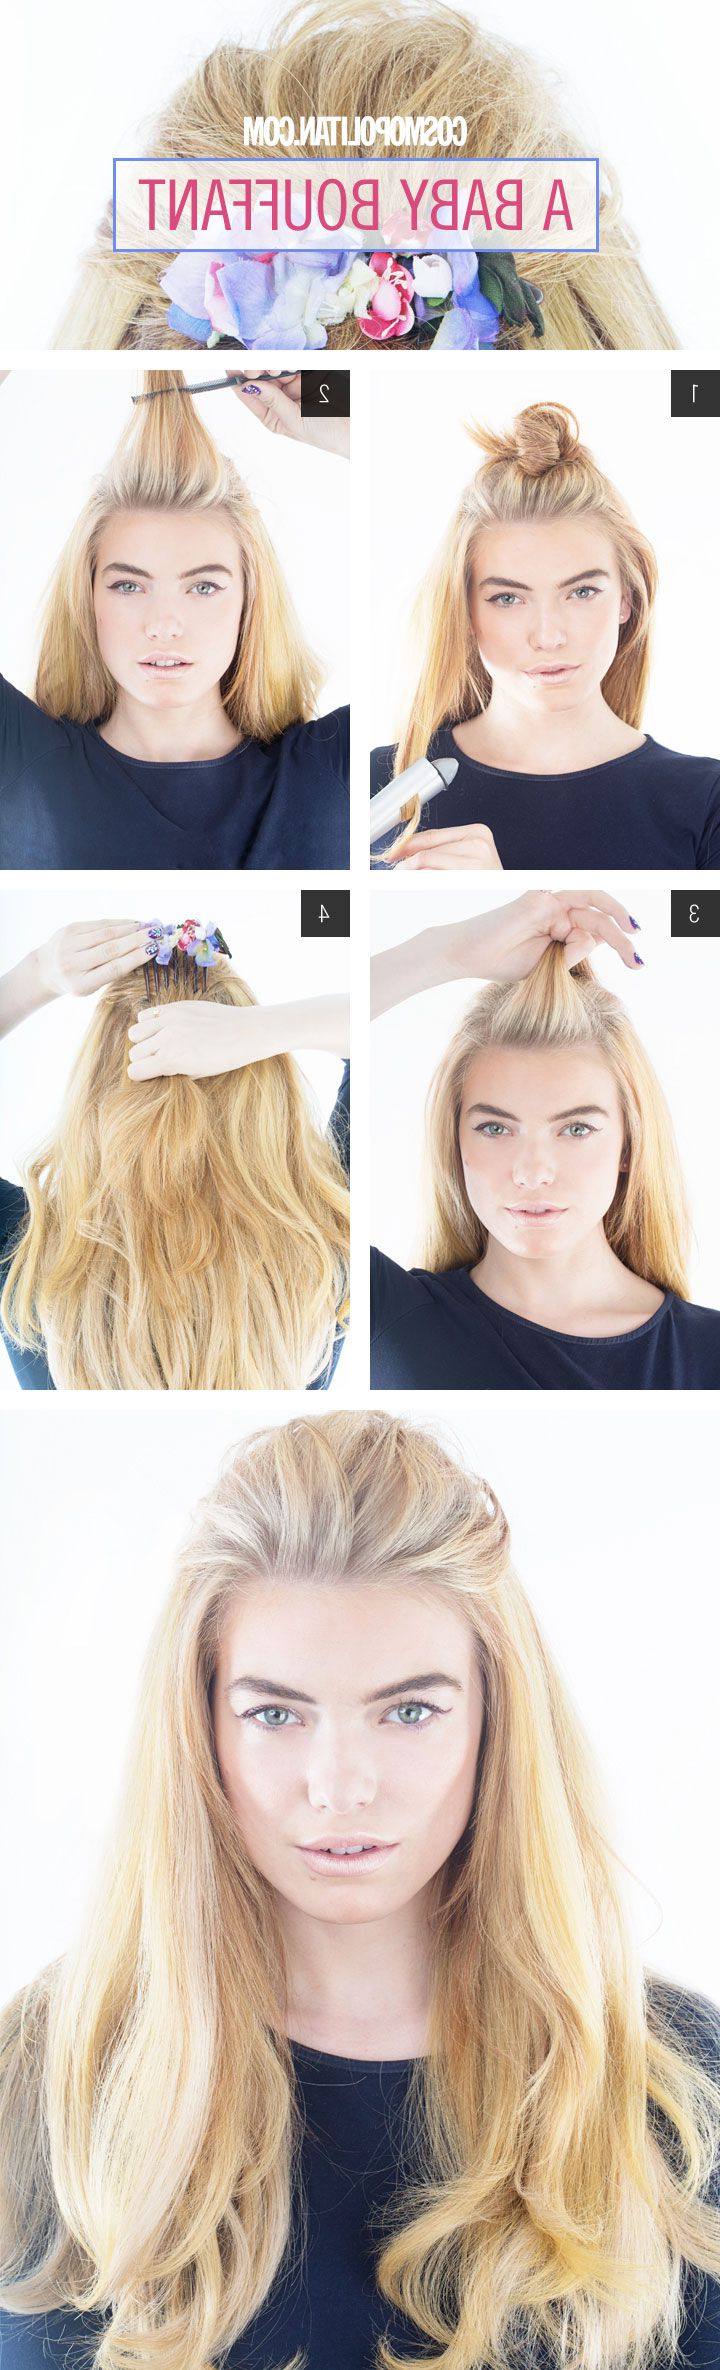 10 Hair Tutorials To Try: How To Teased Hair – Pretty Designs For Preferred Teased Medium Hairstyles (View 1 of 20)